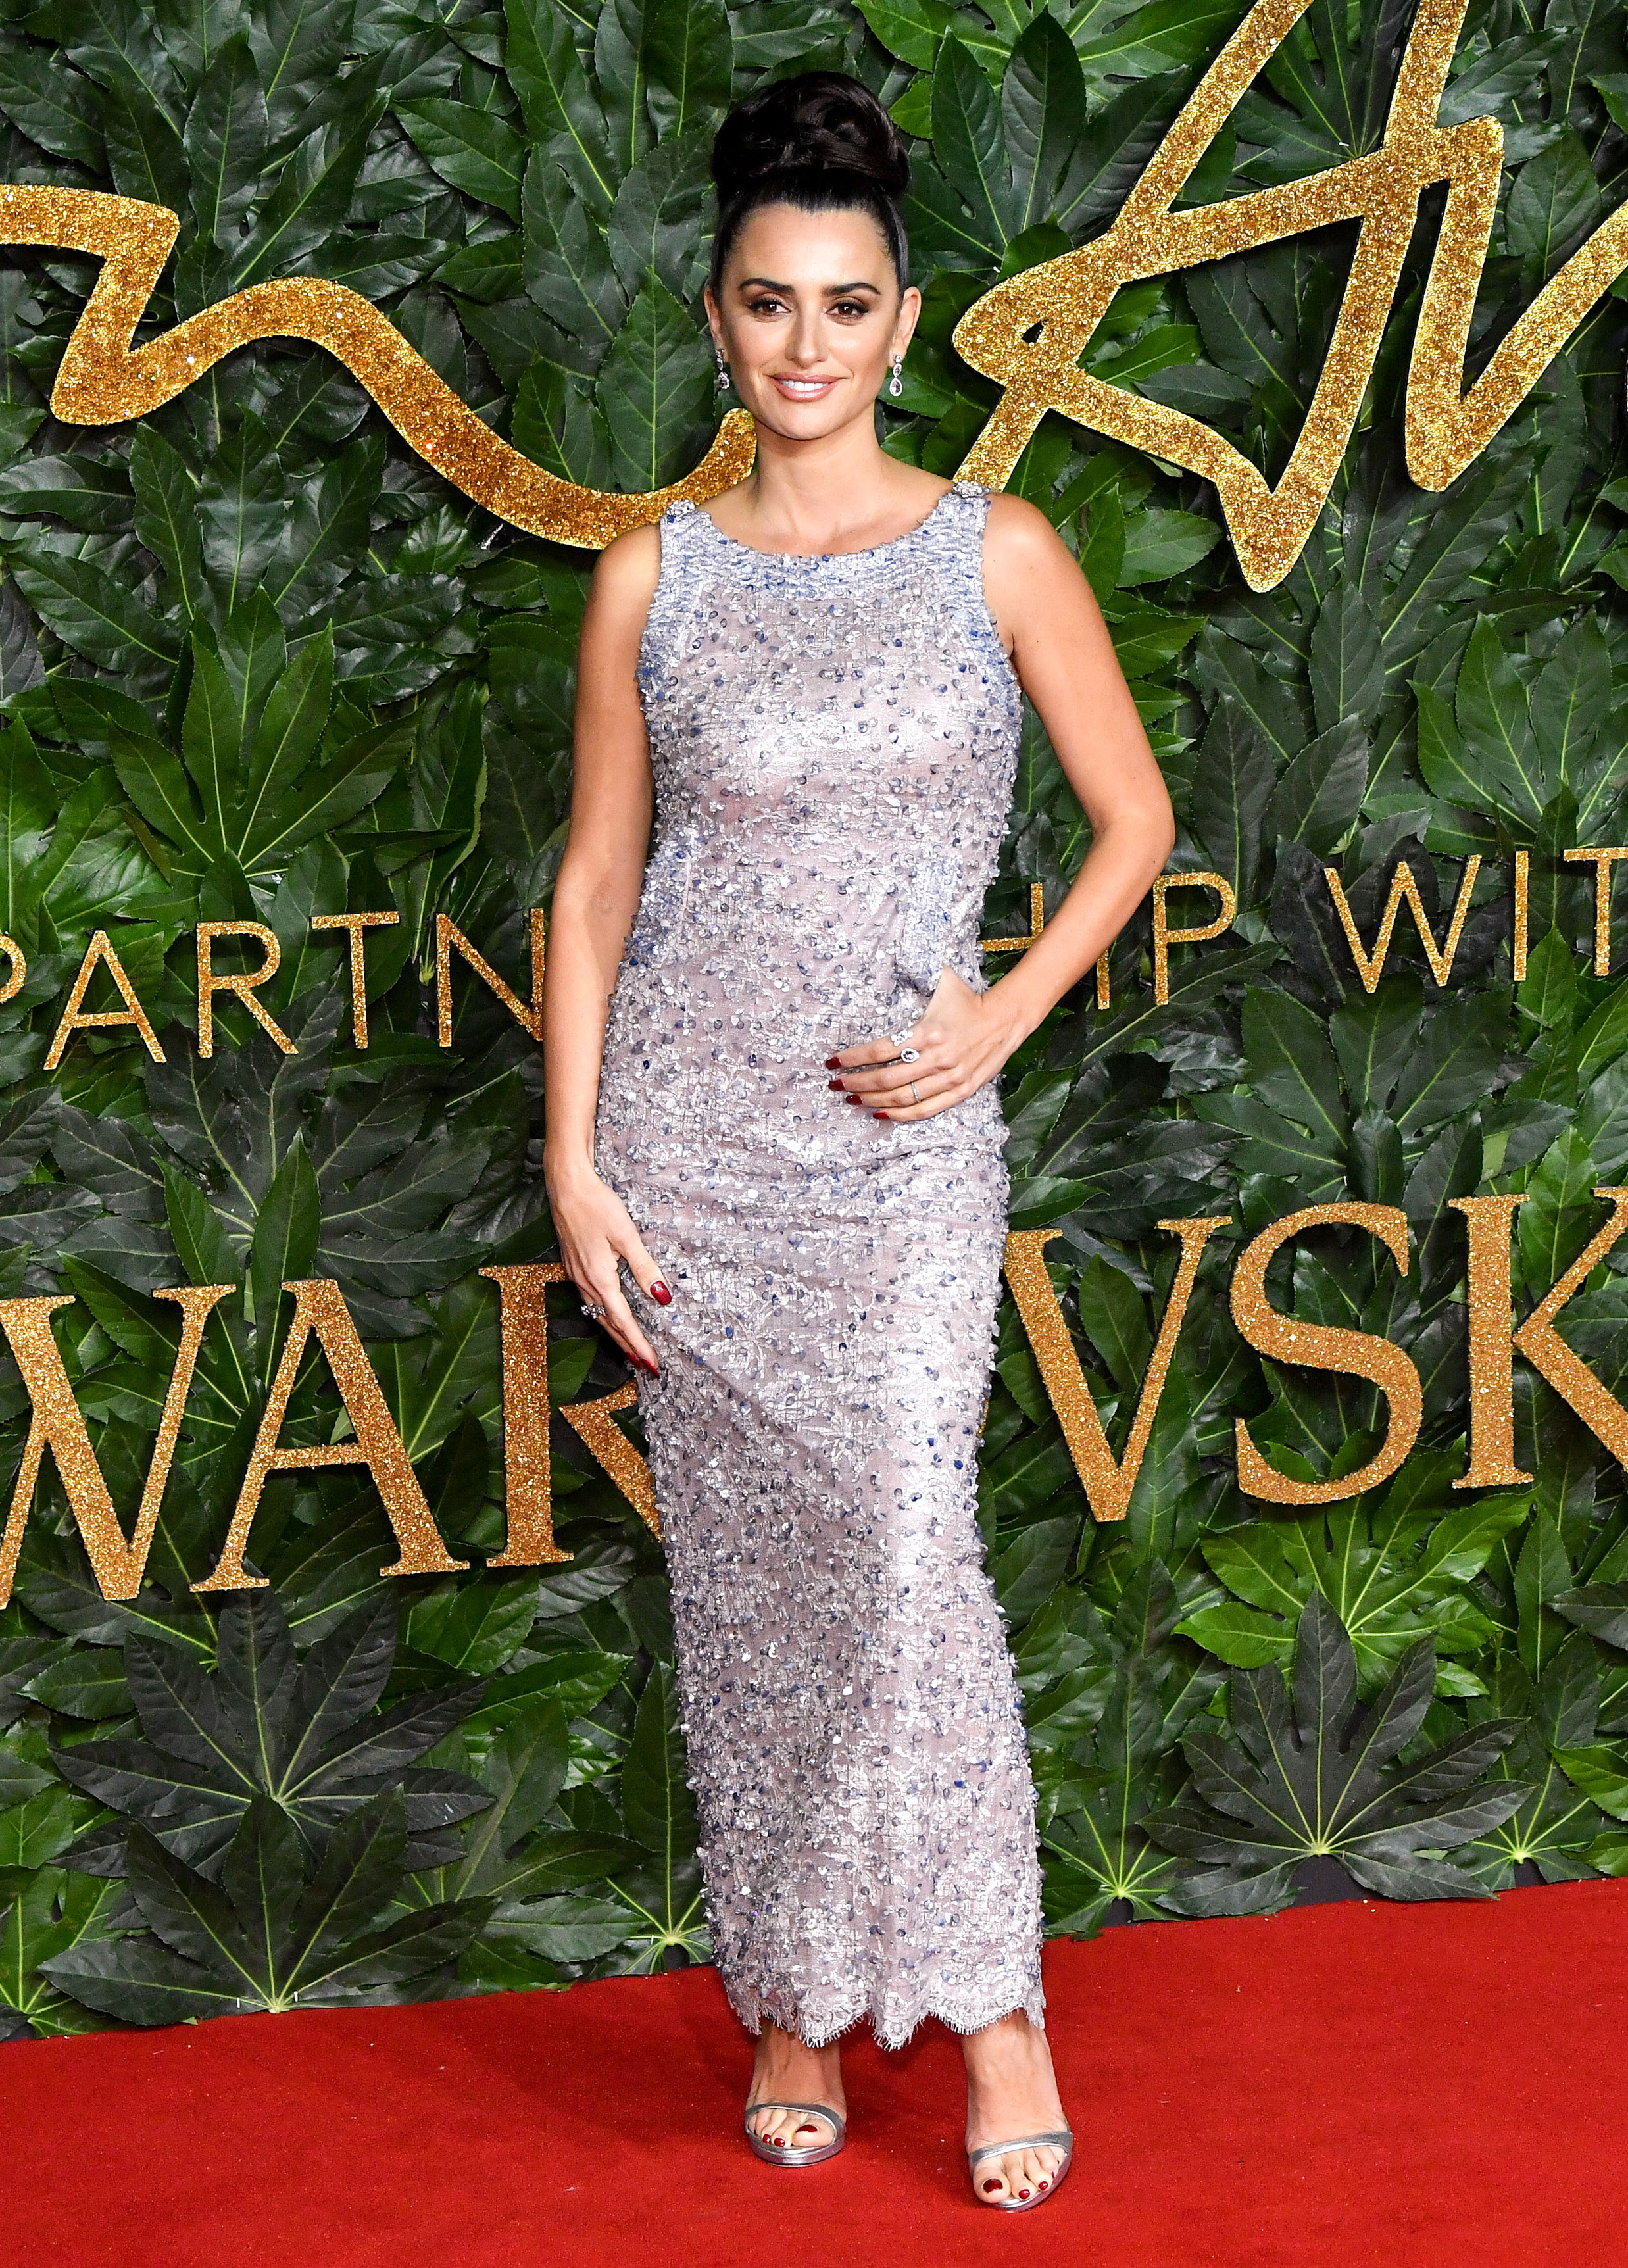 Penelope-Cruz - The Spanish beauty sparkled in a floor-length Chanel dress with a kangaroo pocket and Swarovski jewelry.